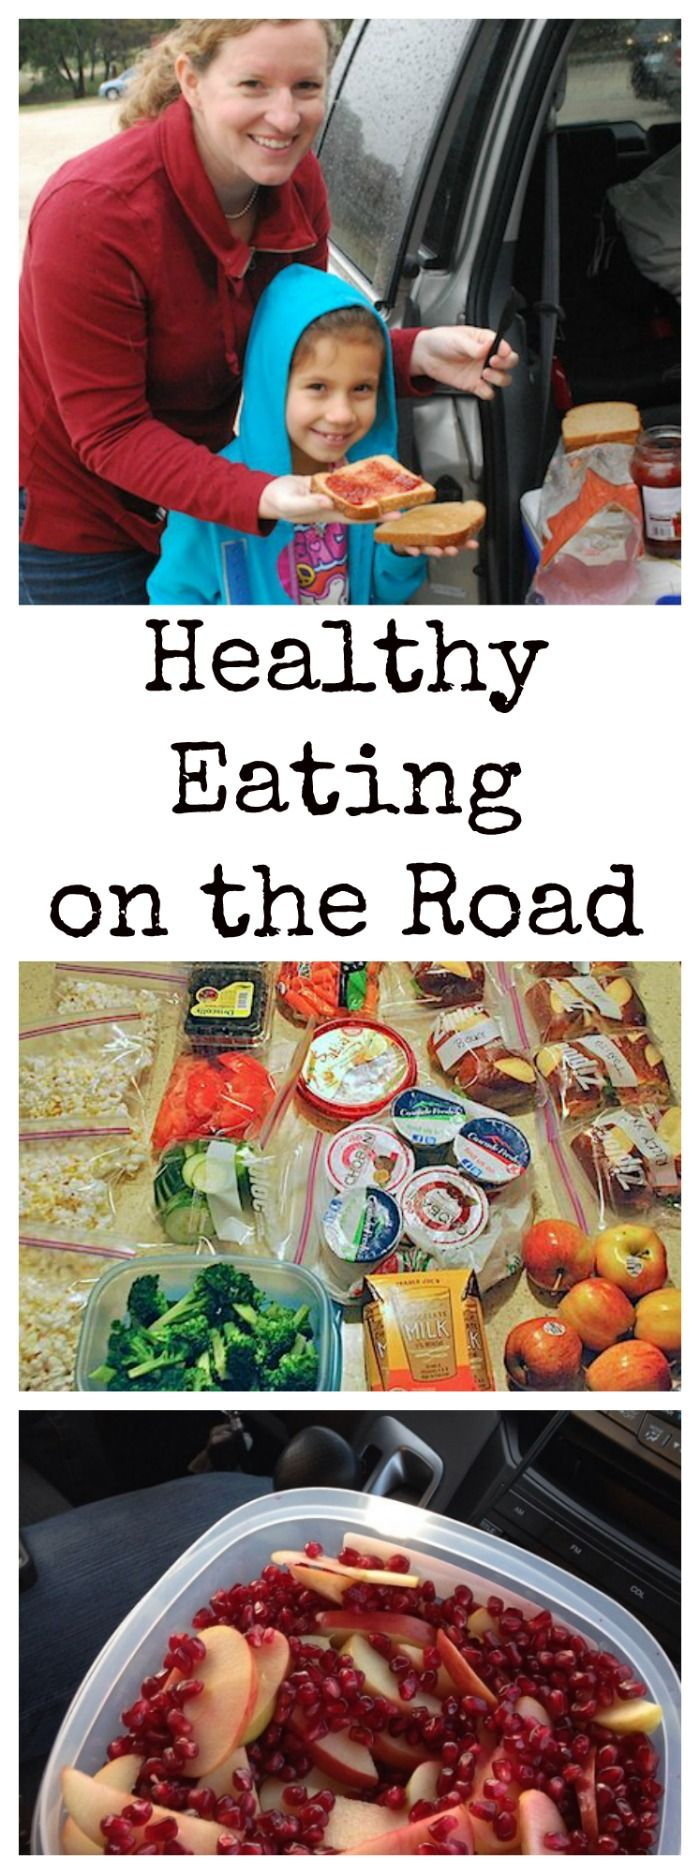 If you're planning a long car ride with your family, check out these healthy and easy ideas of food for road trips that you can plan ahead of time.